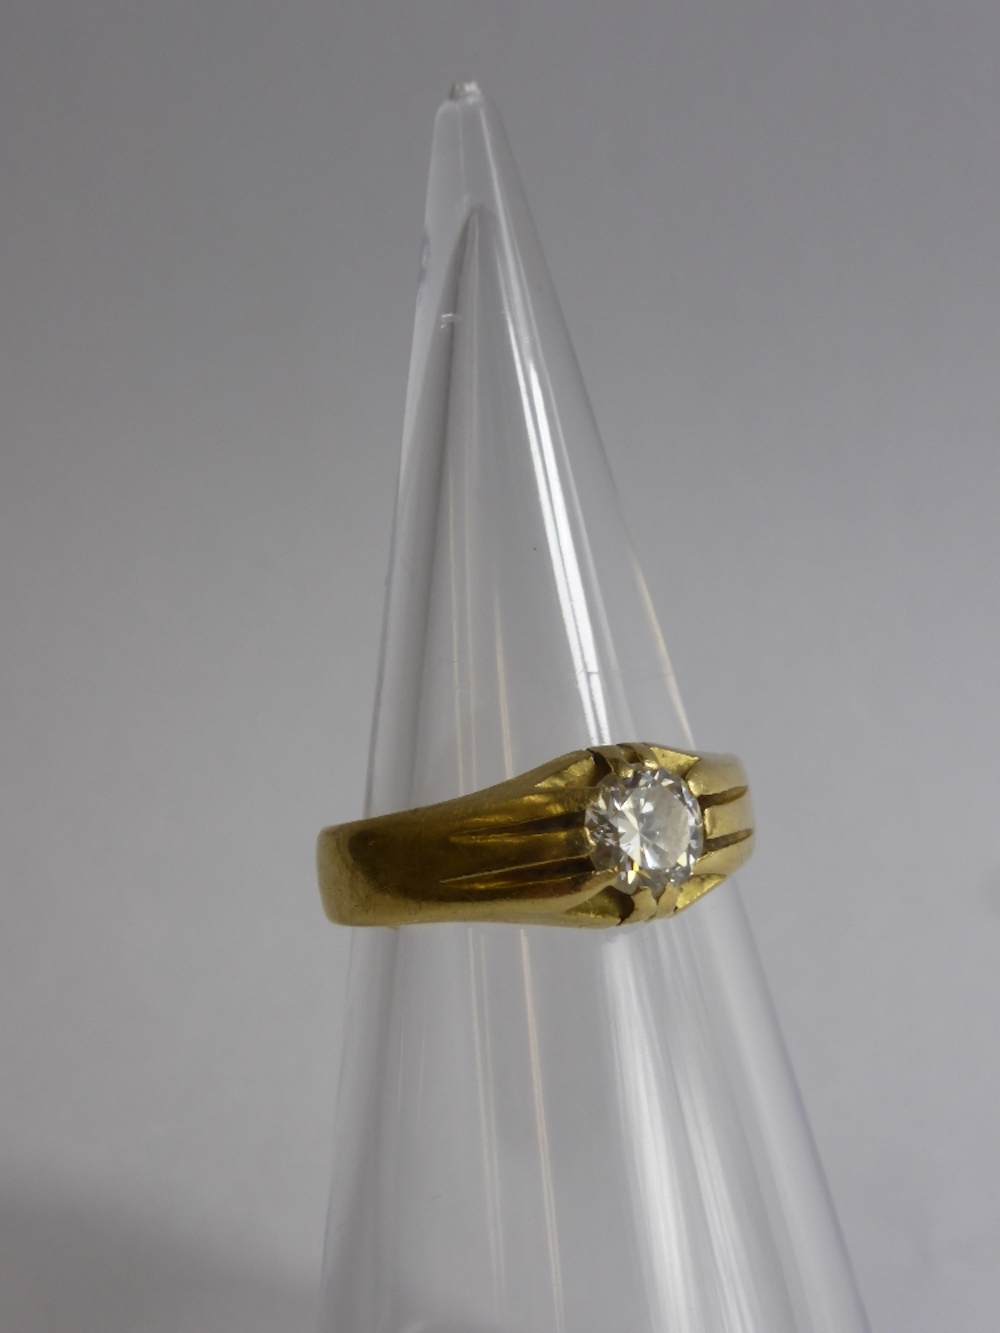 Gentlemans 18ct Gold & Diamond Solitaire Ring £500